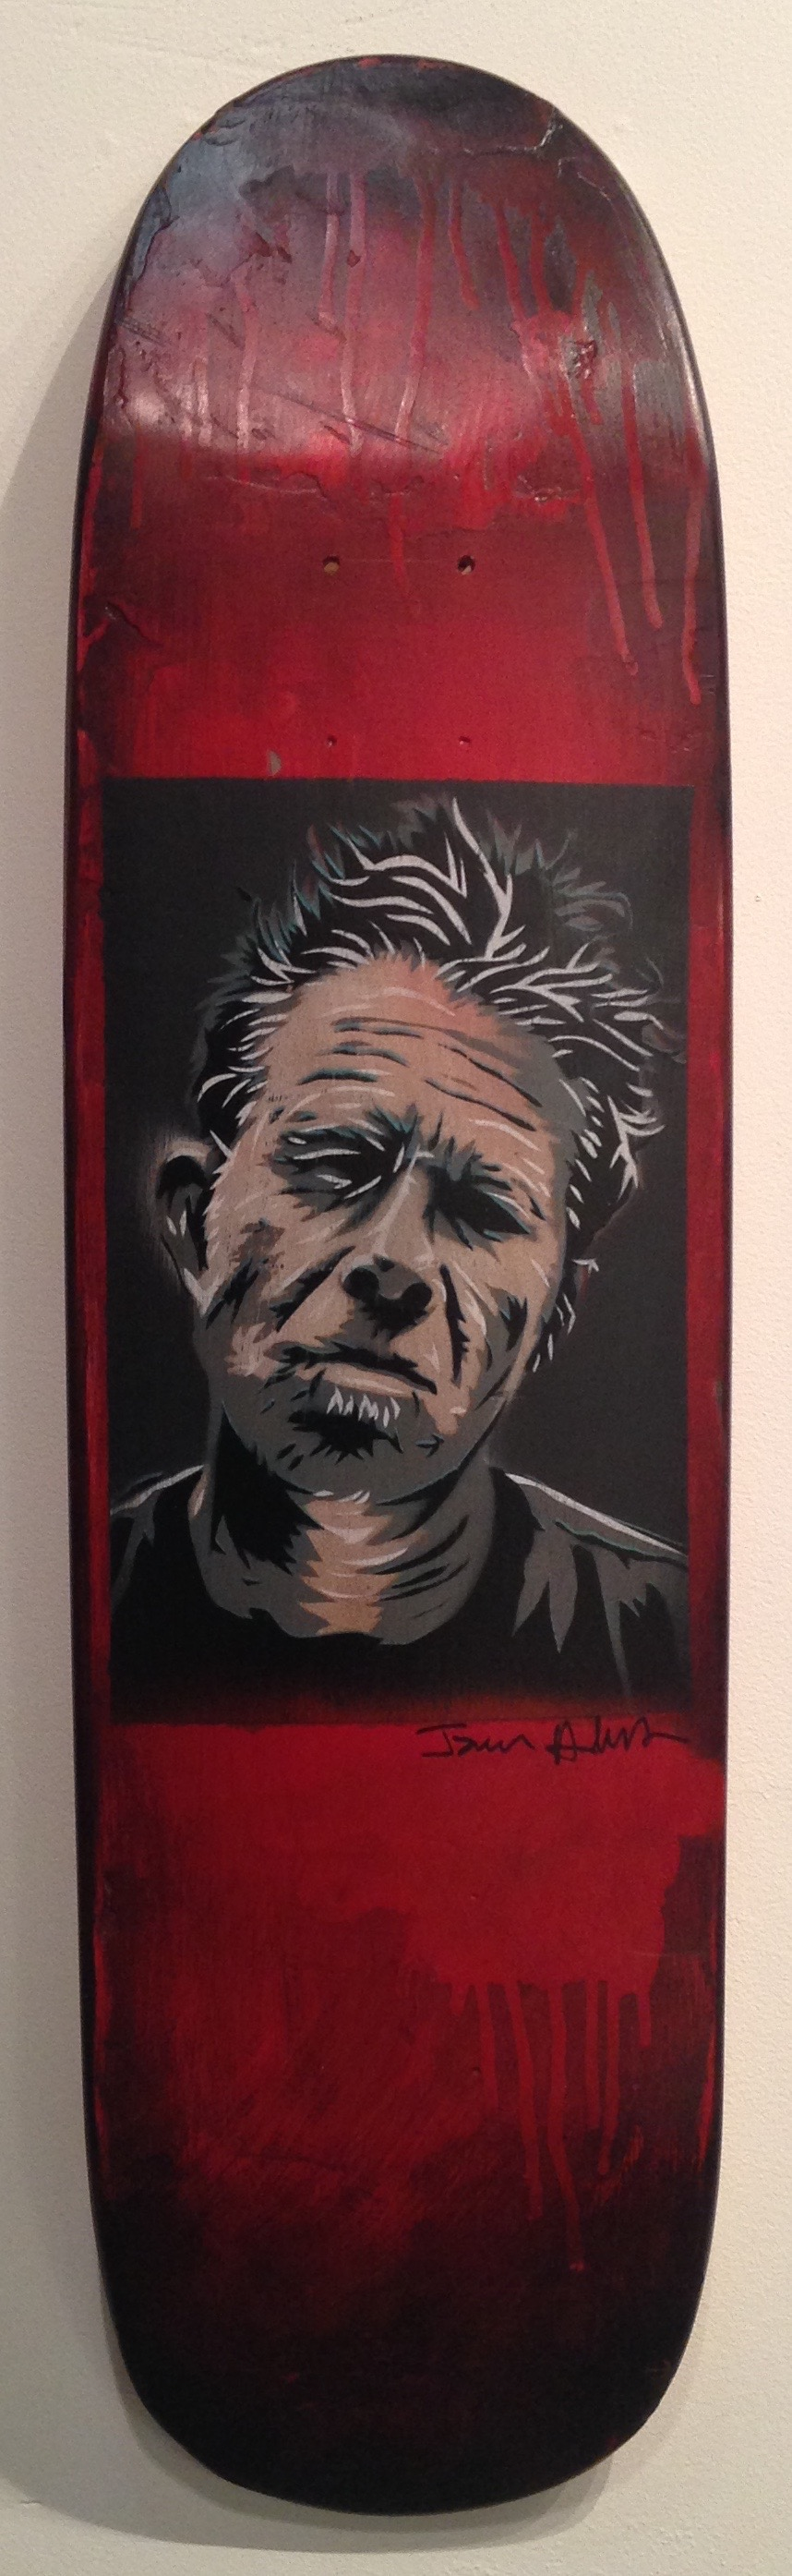 """Tom Waits"" skateboard deck $250"